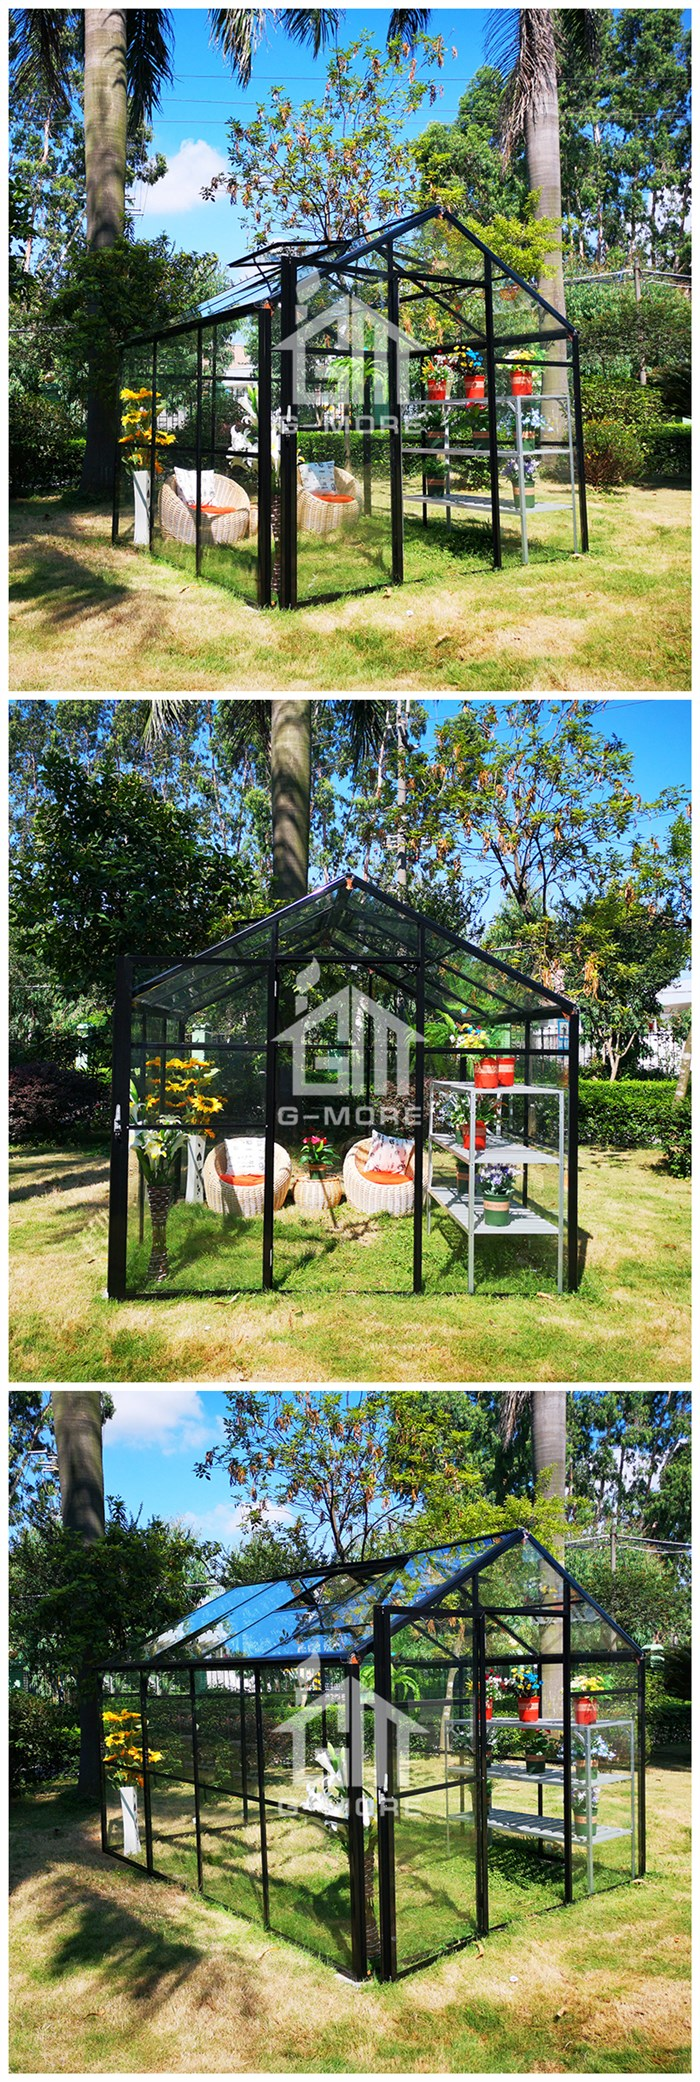 G-MORE Premium New Design Glasshouse for Family Gardening / 16'x11' Double Door with 4MM Safety Glass